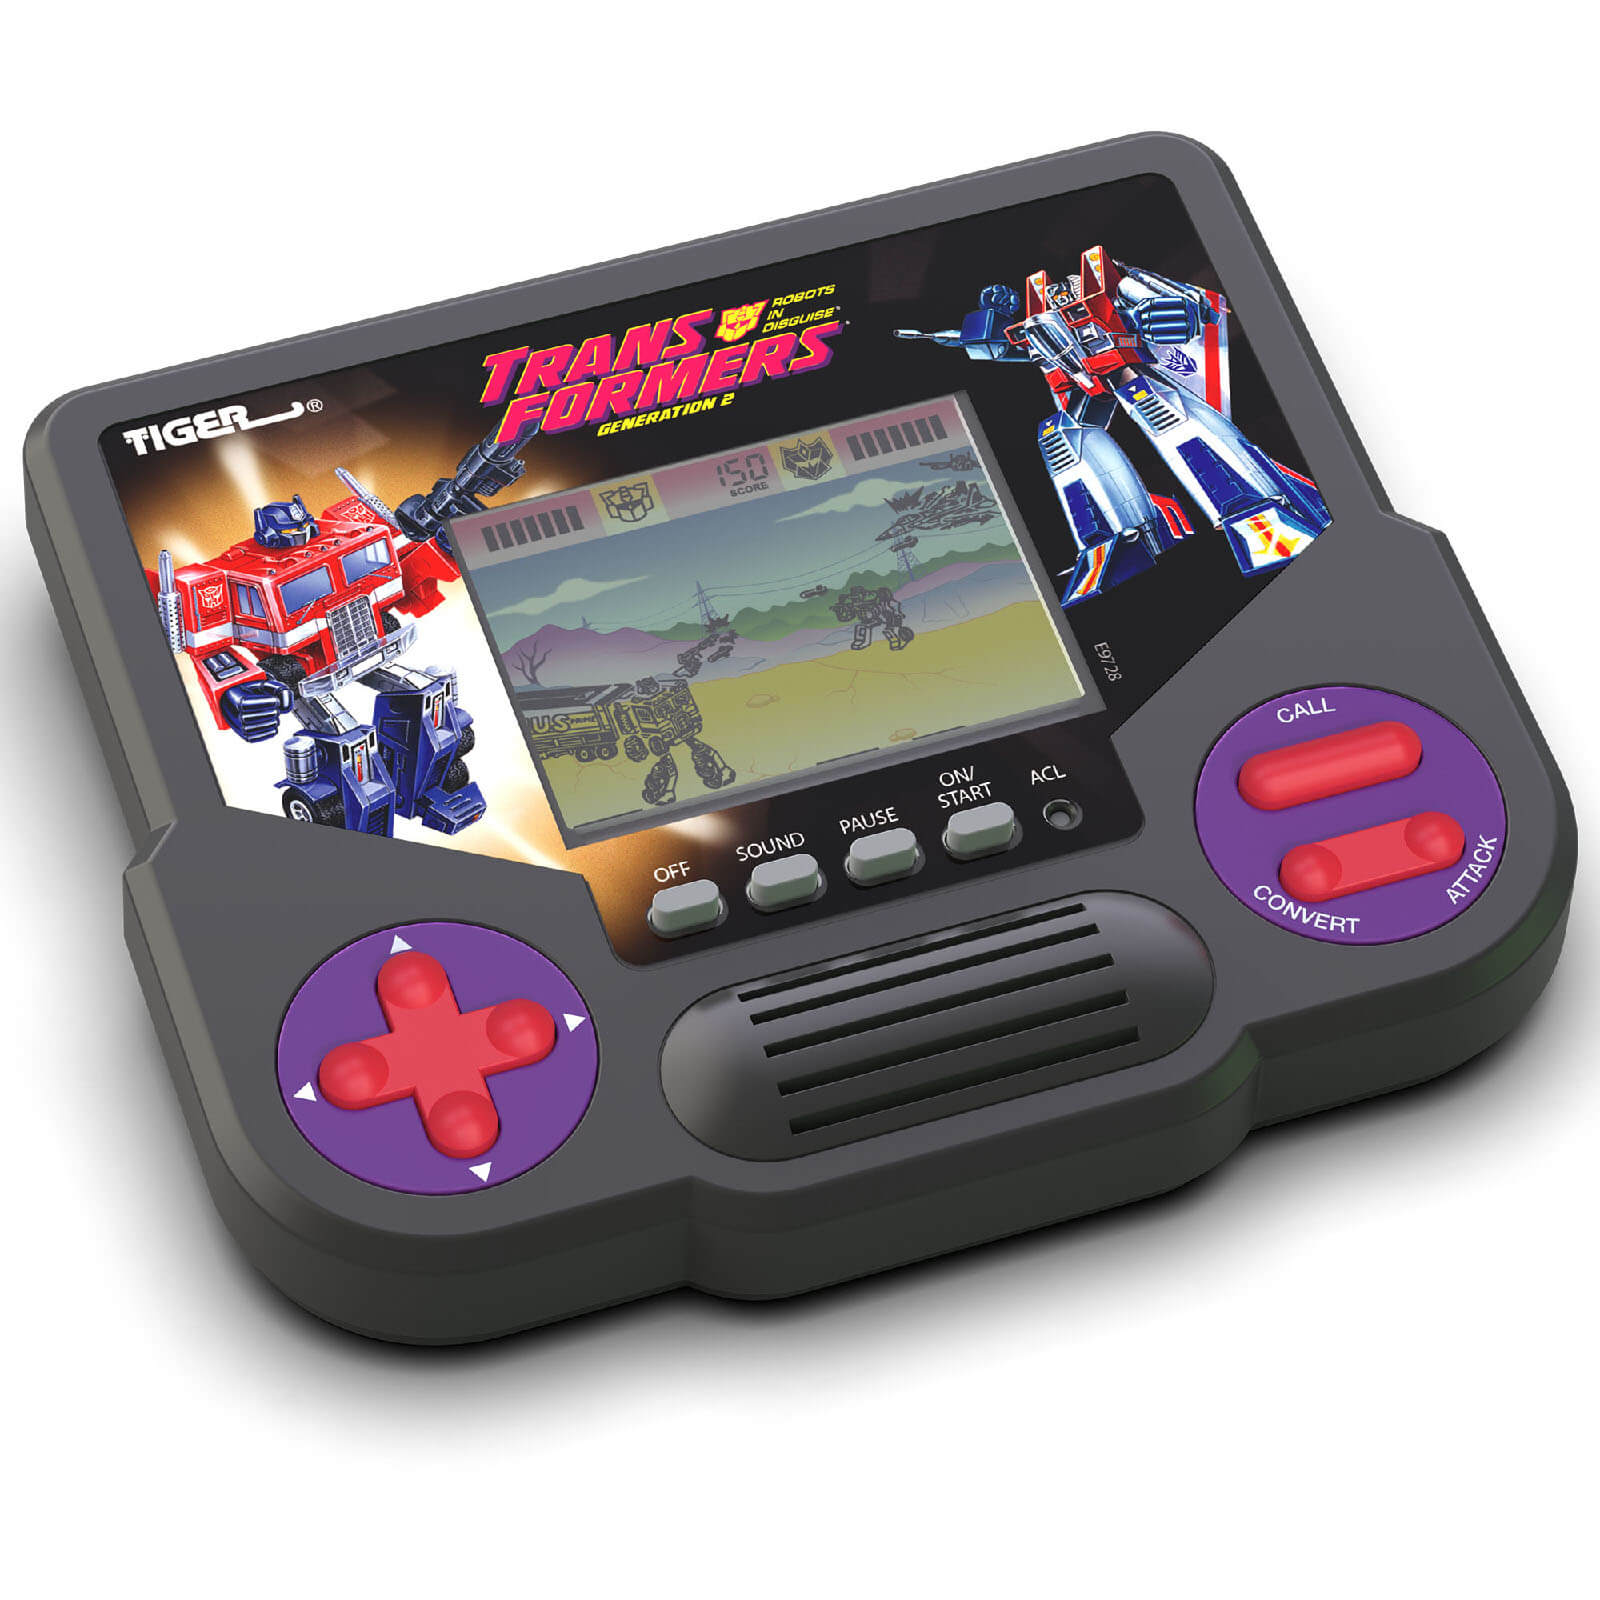 Image of Hasbro Tiger Electronics Transformers Generation 2 Electronic LCD Video Game